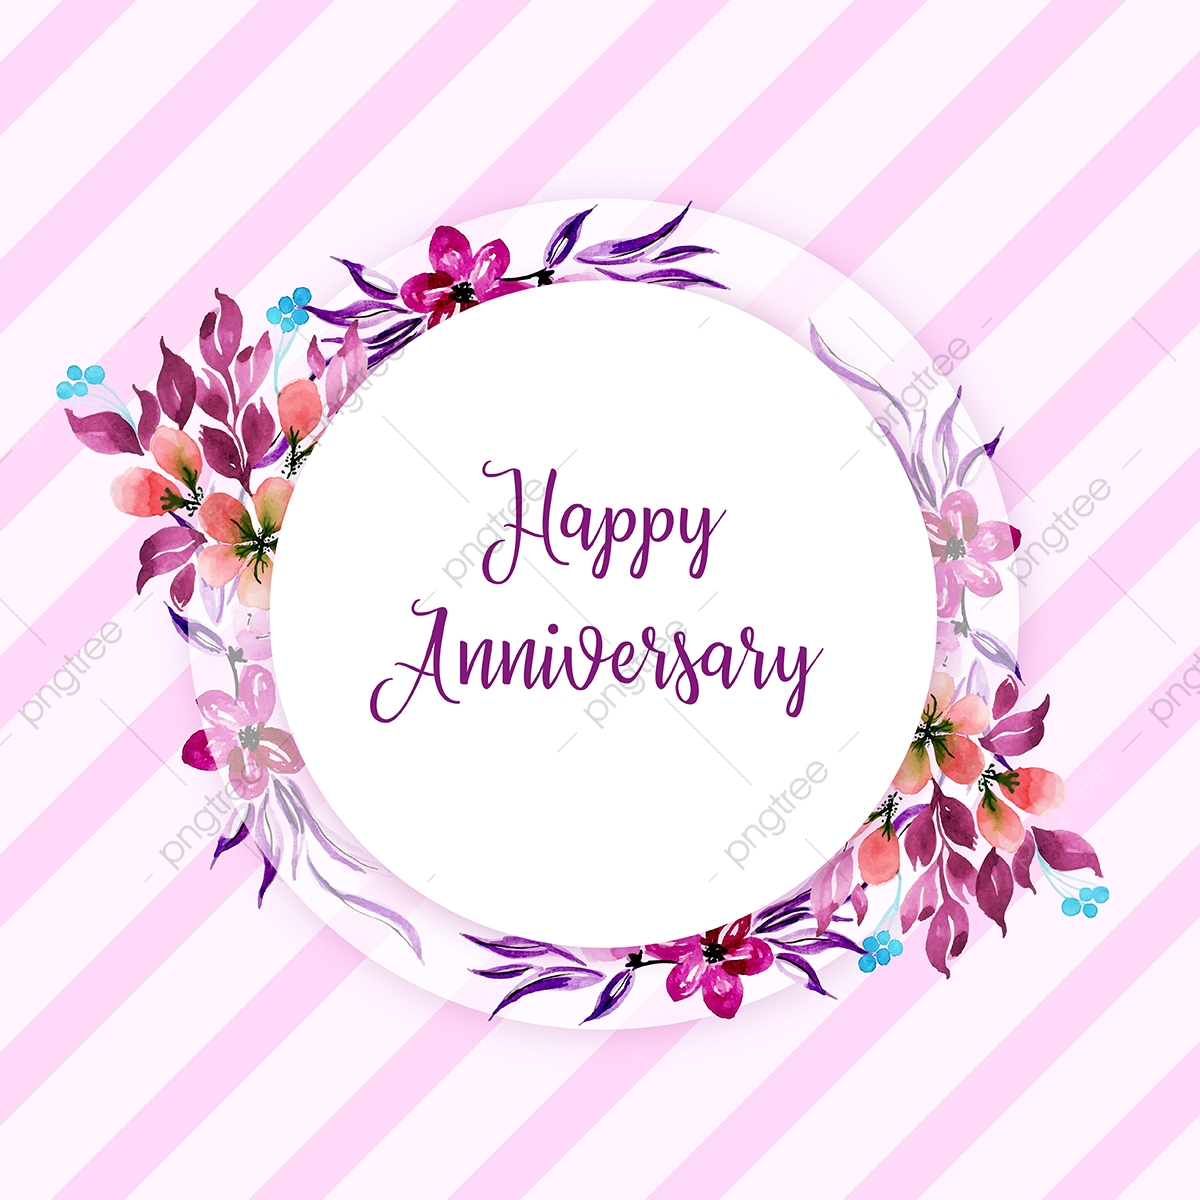 Watercolor Floral Happy Anniversary Frame Background Watercolor Color Floral Png And Vector With Transparent Background For Free Download